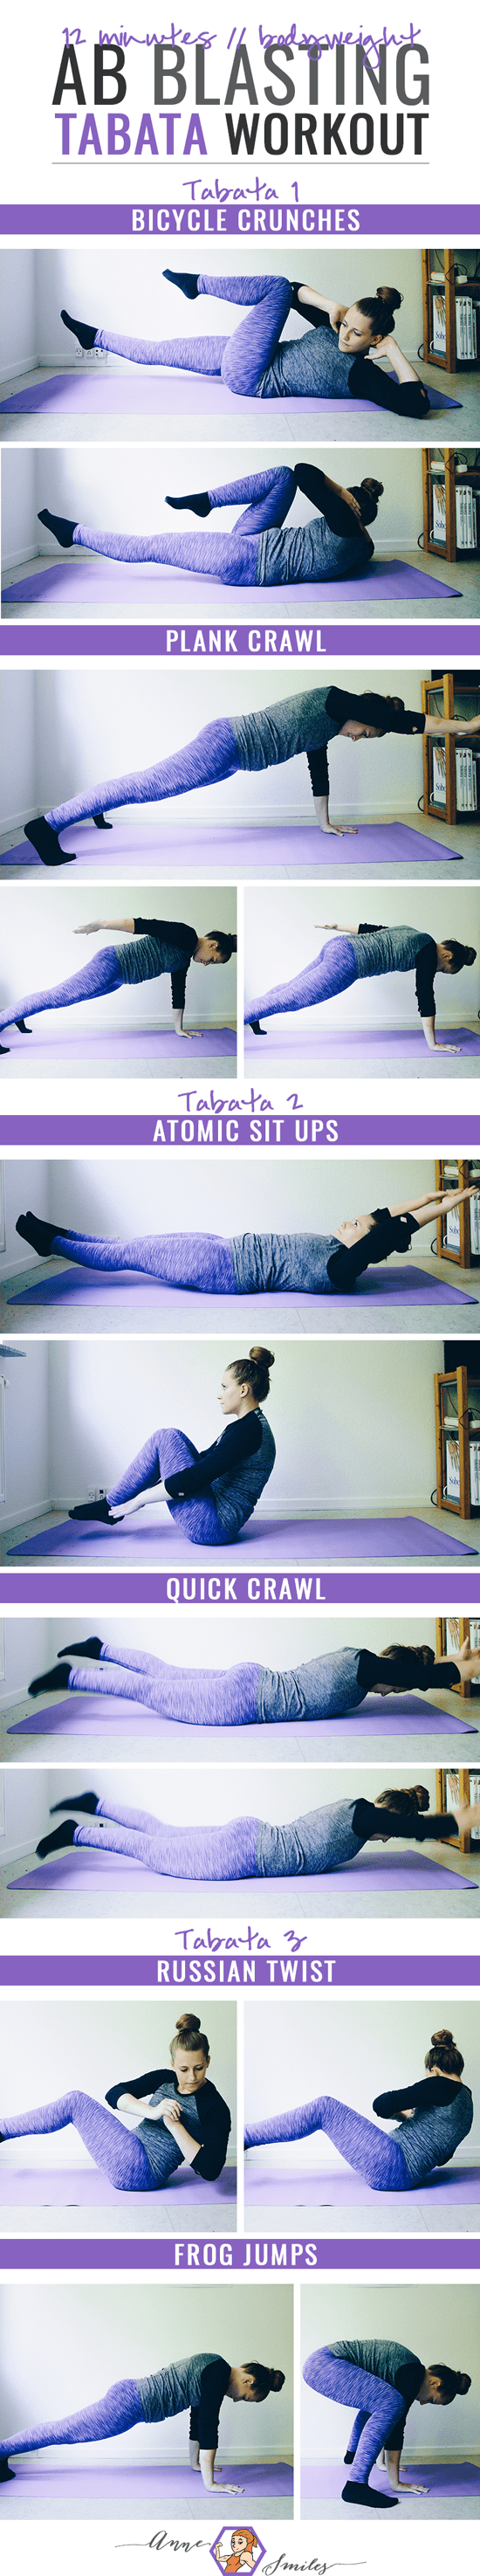 Ab blasting tabata workout 12 minute body weight ab workout exercises